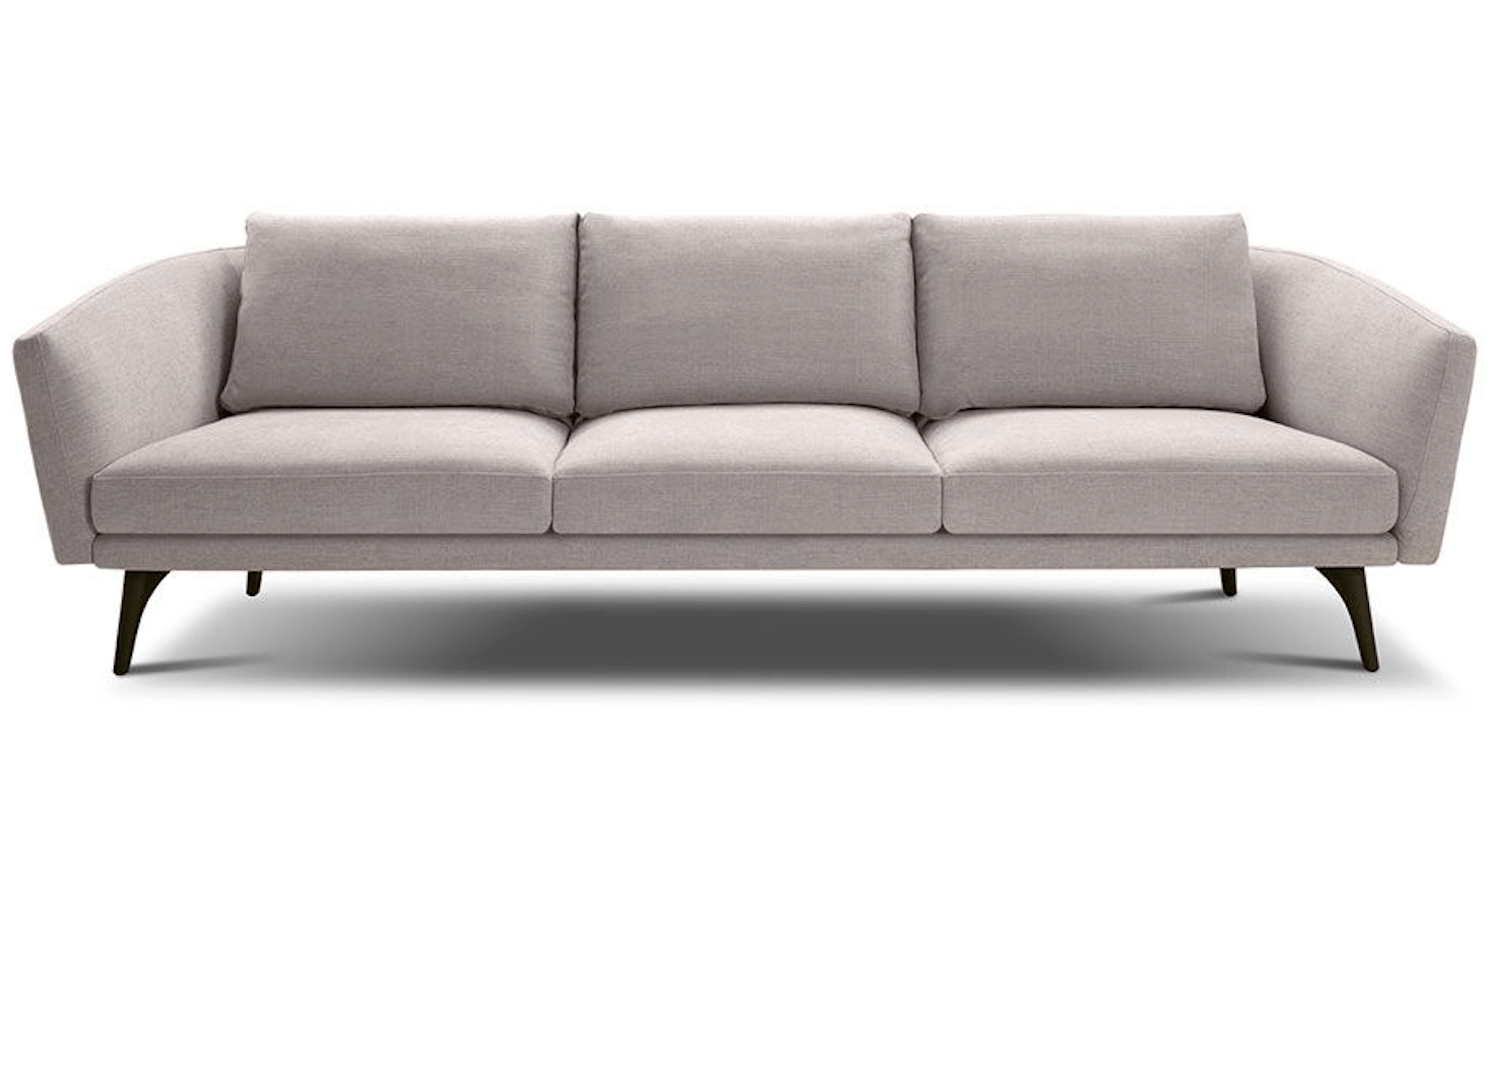 King Boulevard Sofa By King Living Est Living Design Directory - Sofa king furniture